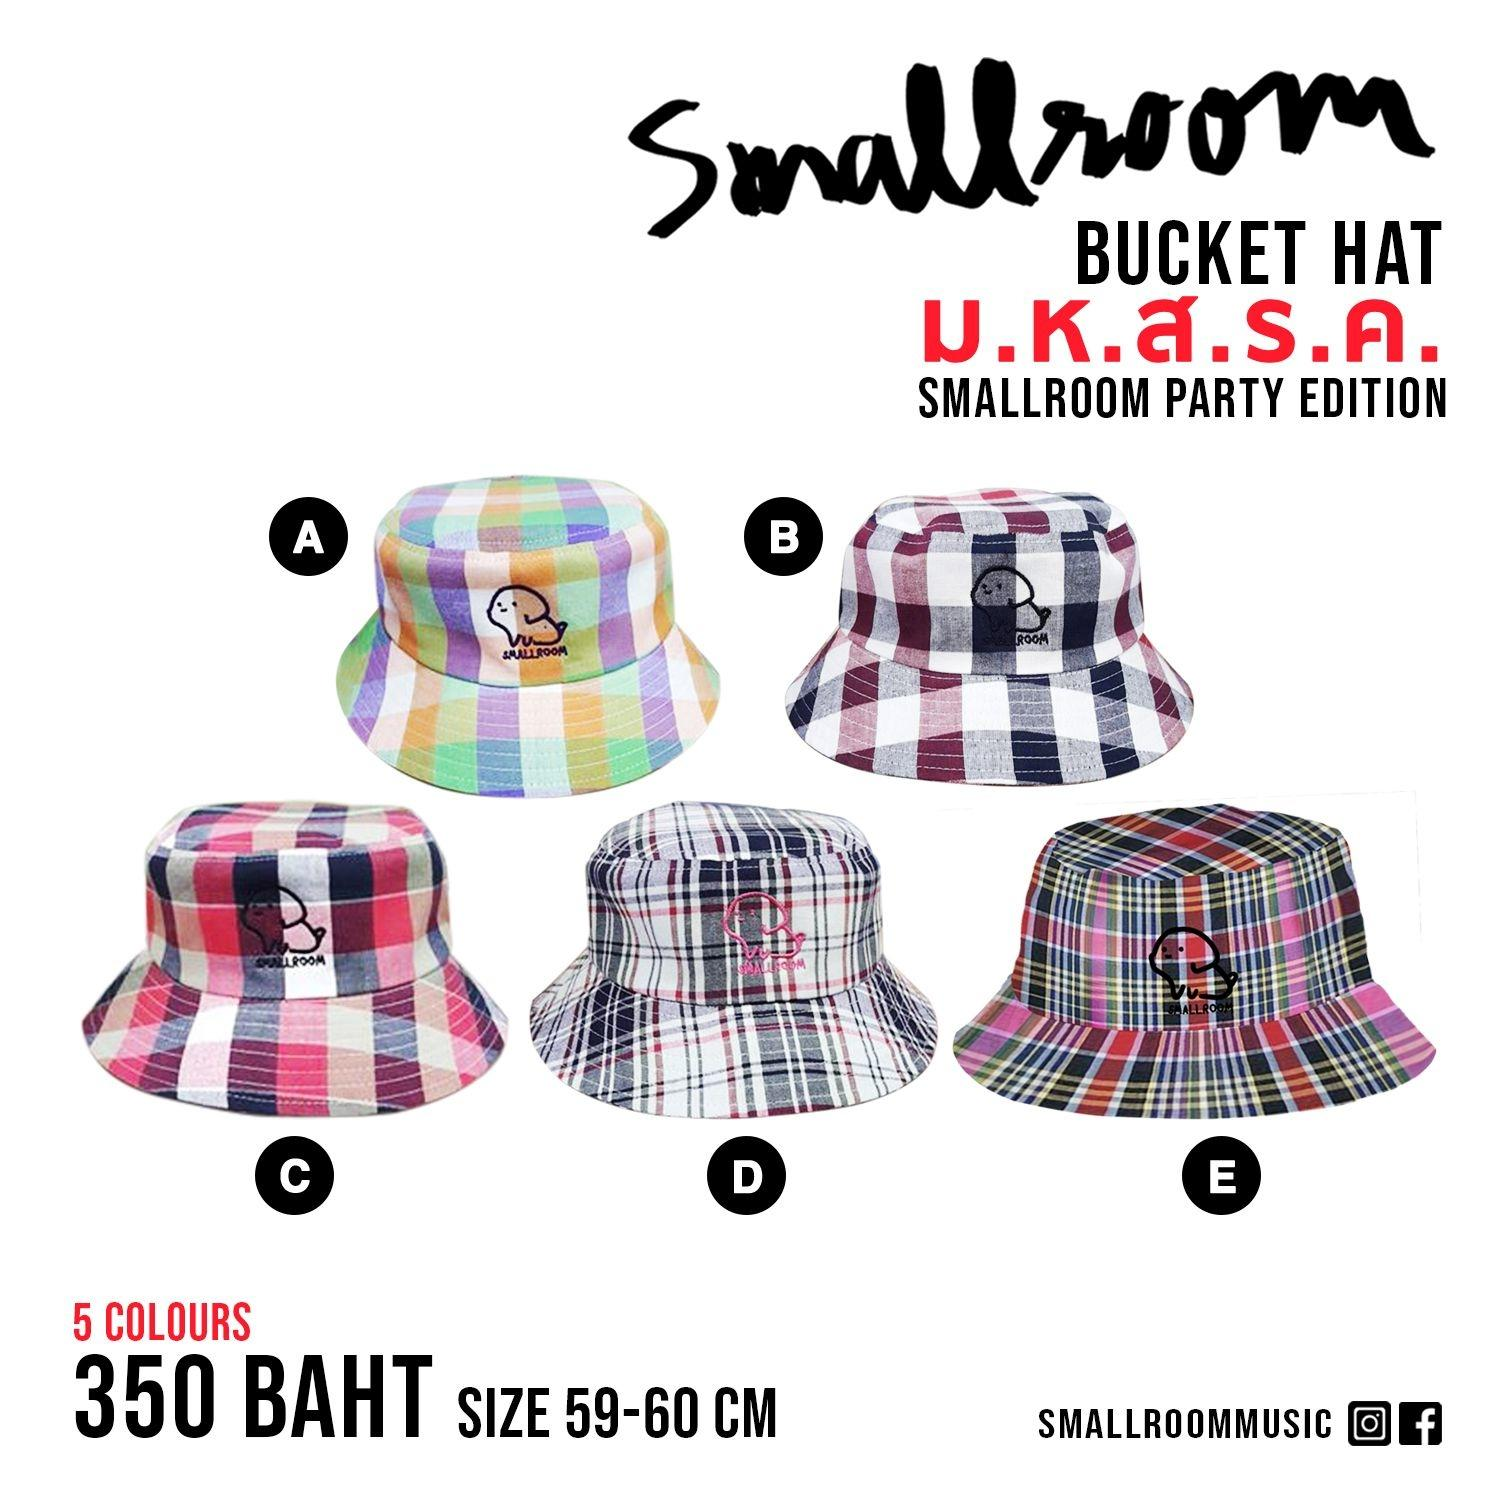 BUCKET HAT ม.ห.ส.ร.ค. SMALLROOM PARTY EDITION